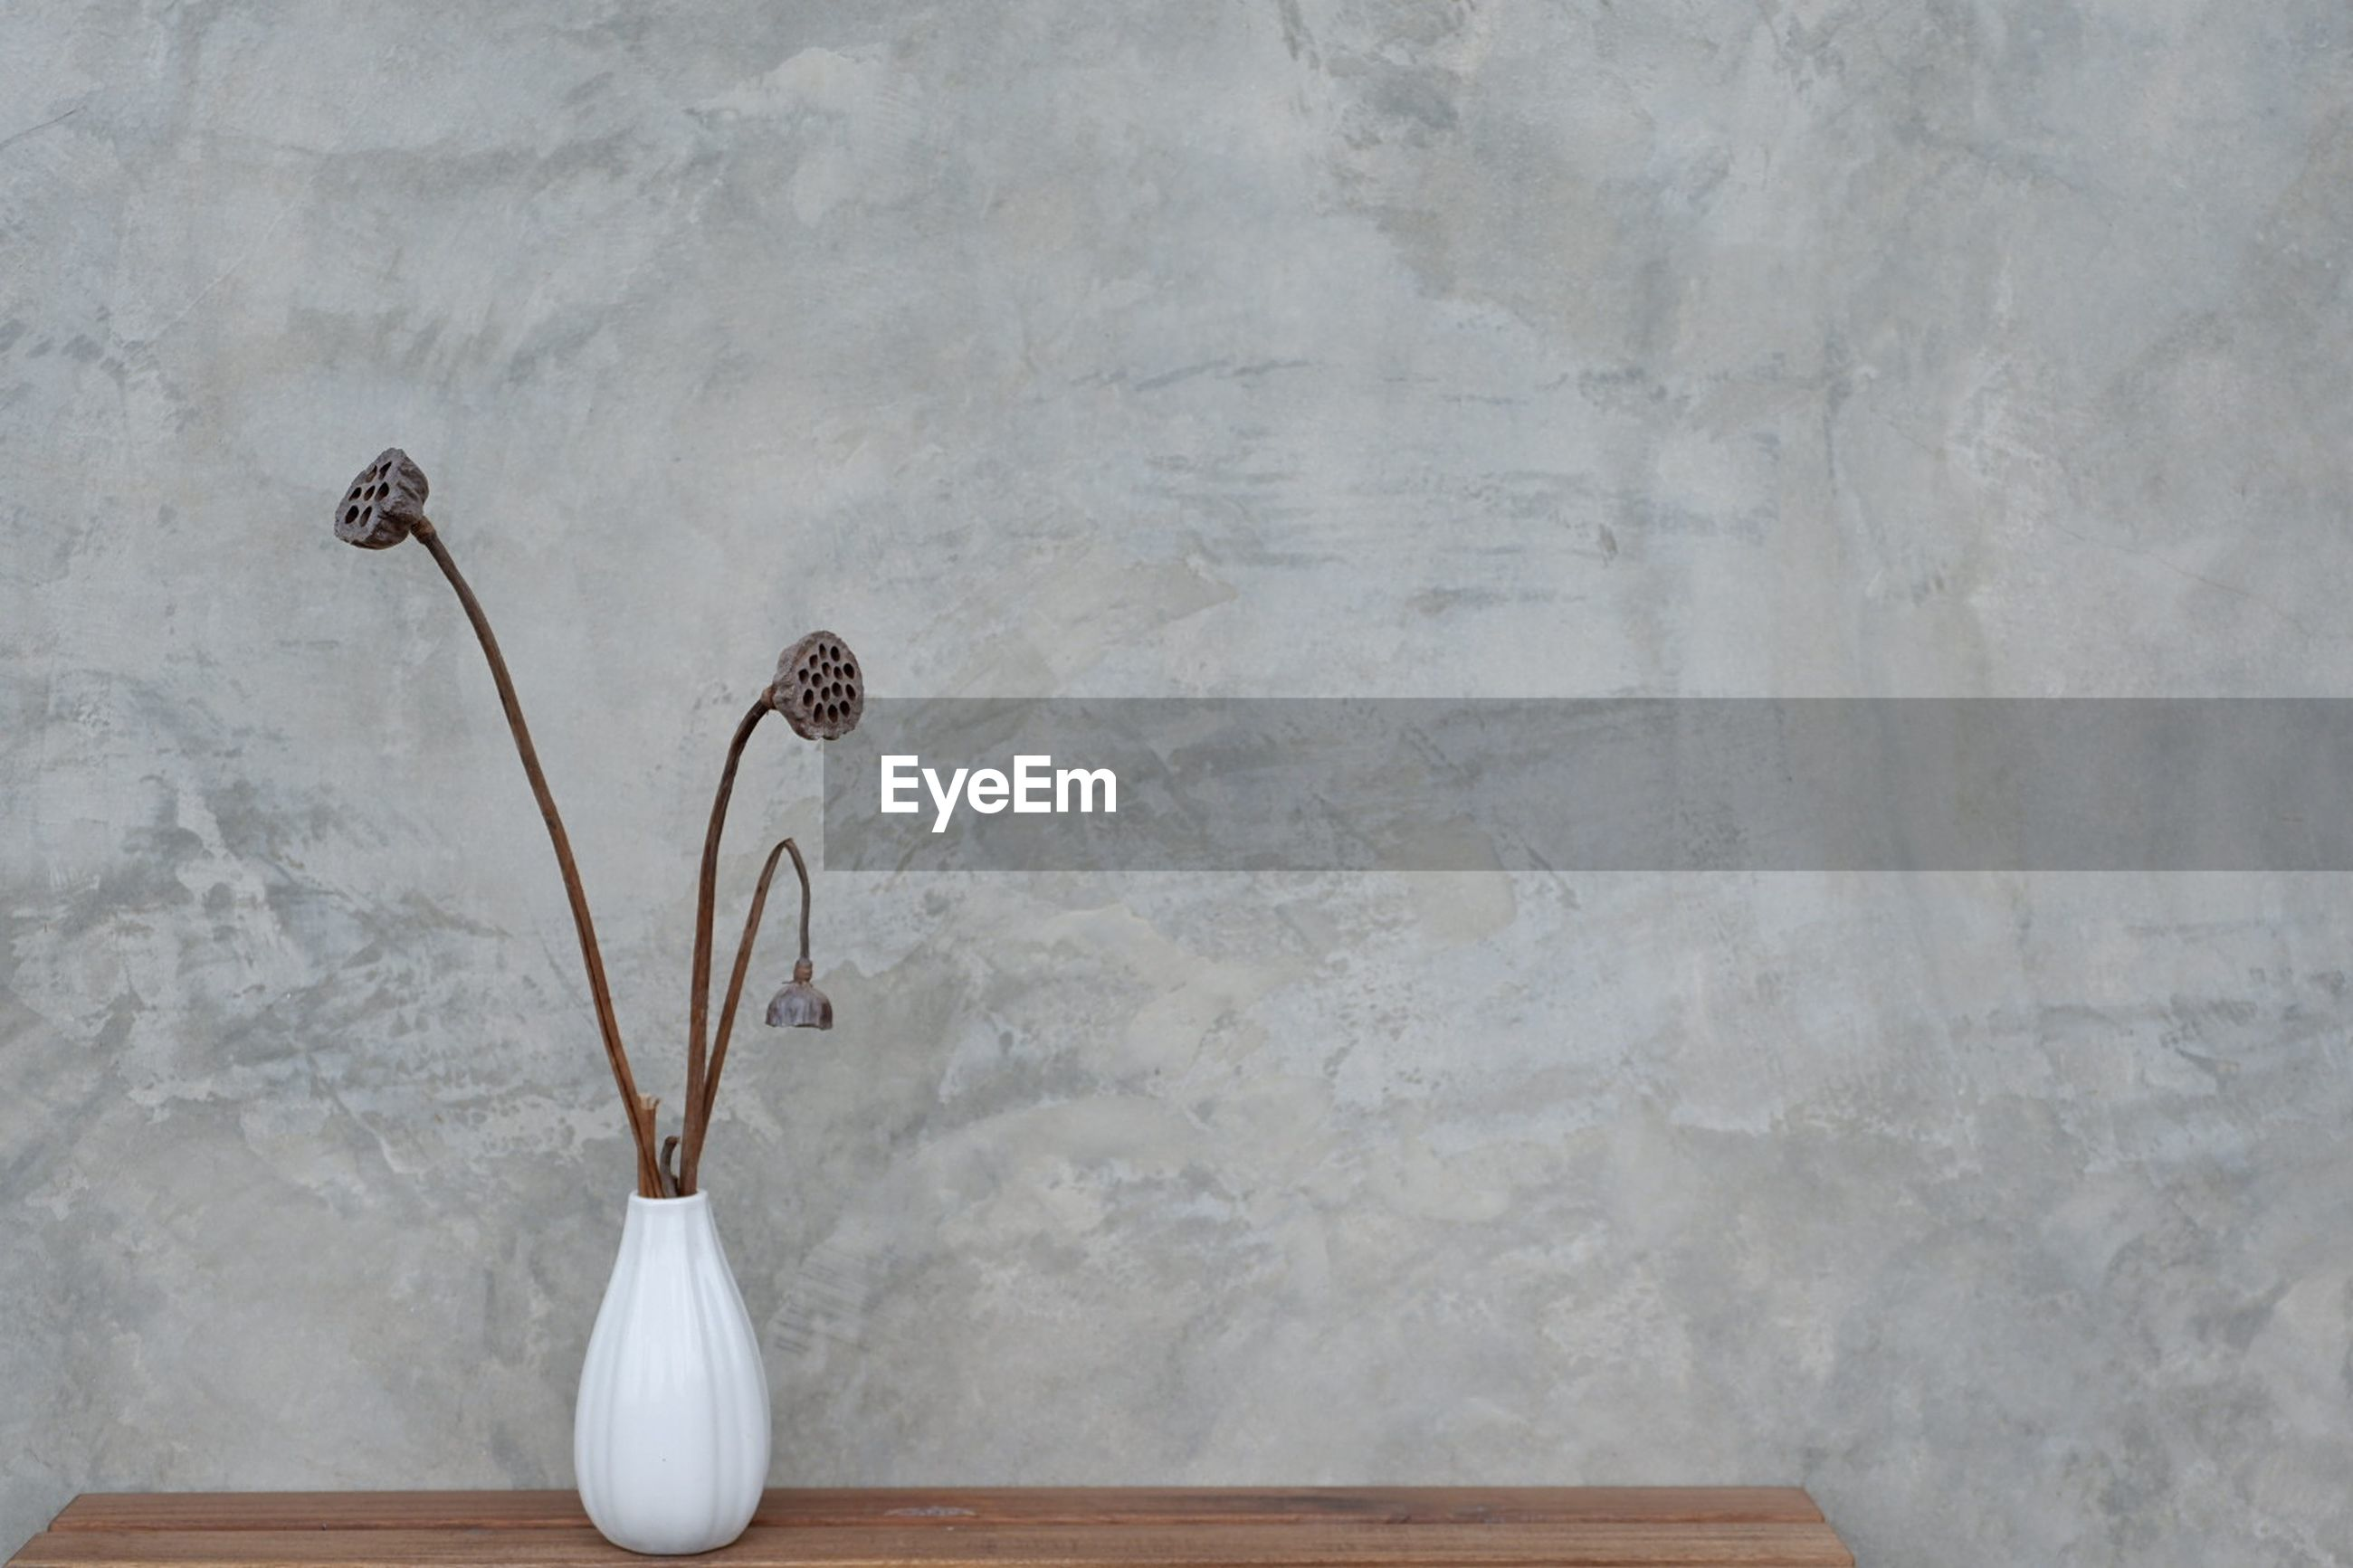 Close-up of white vase on table against wall